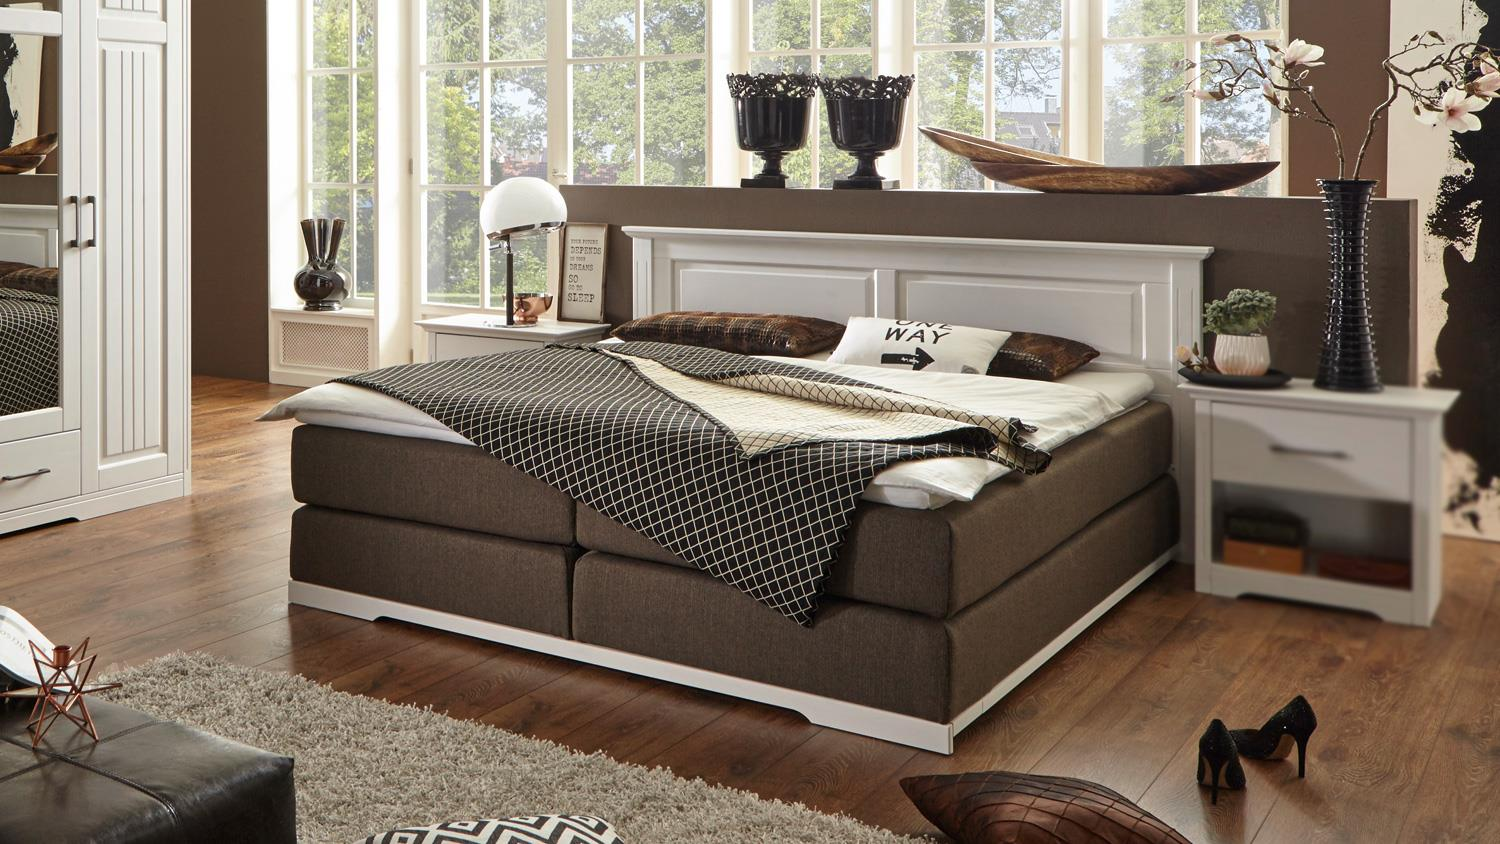 boxspringbett kalas bett schlafzimmerbett kiefer massiv wei 180x200. Black Bedroom Furniture Sets. Home Design Ideas